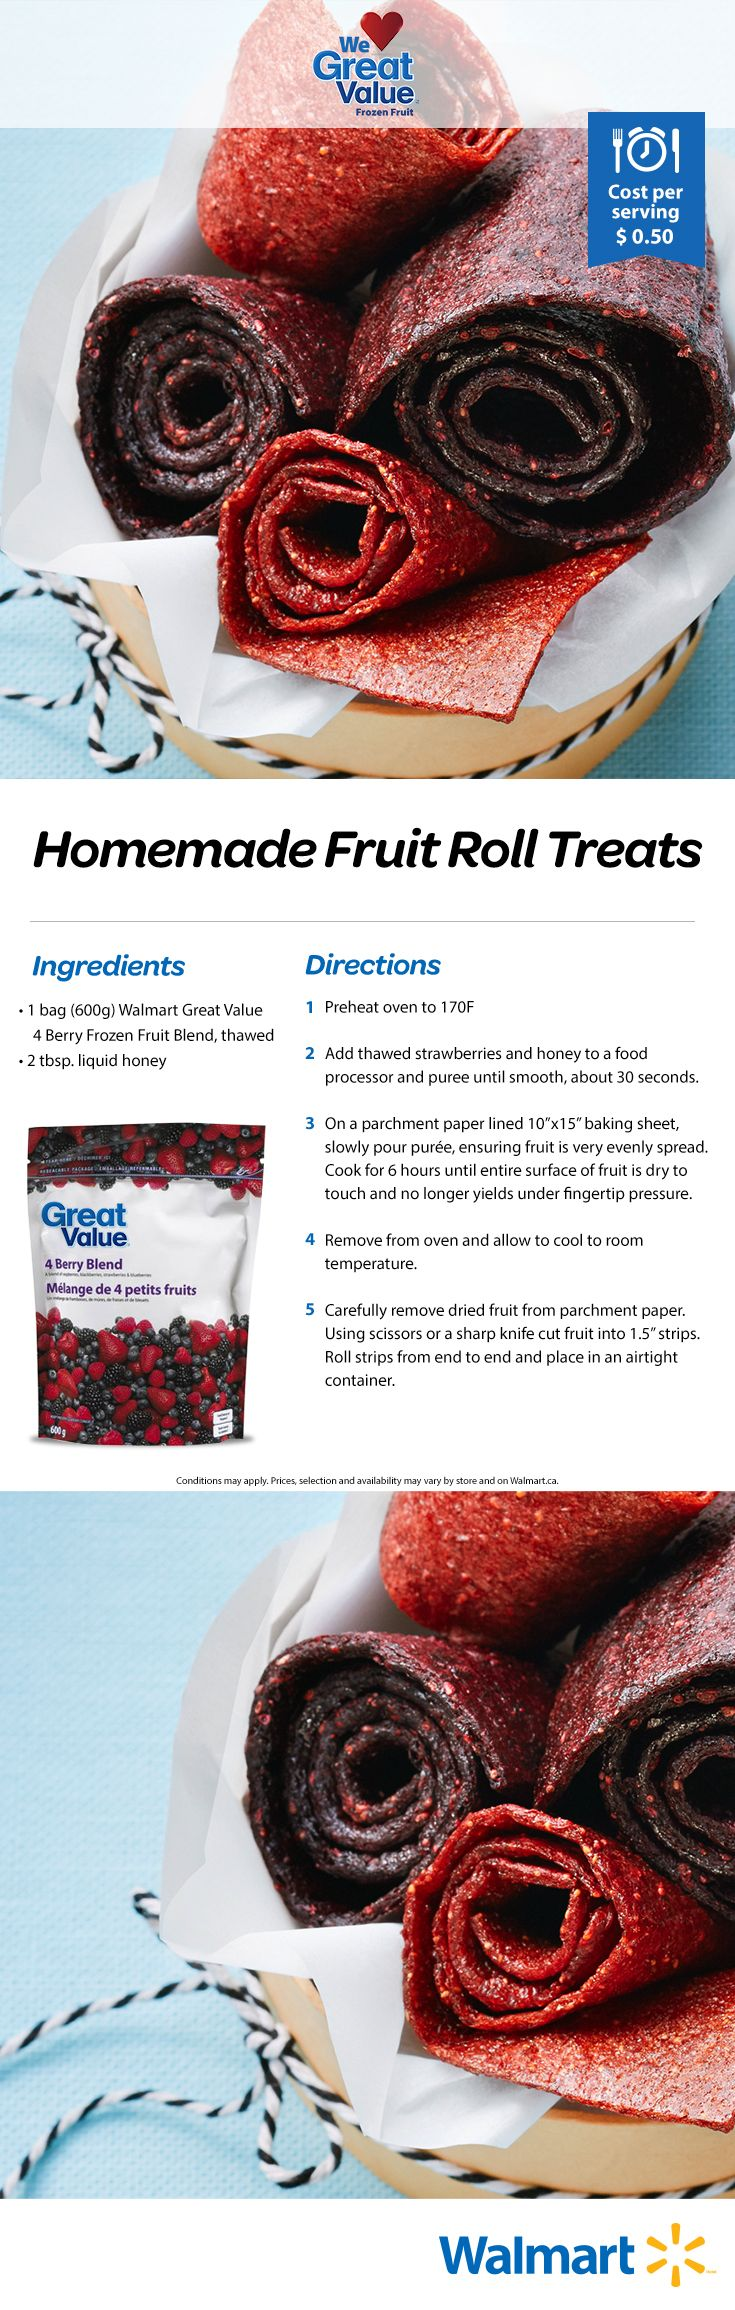 A homemade fruit roll-up your kids will love immediately. All it takes is our Great Value frozen fruit! #realsolutions #fruitrollups #rollups #kidsdesserts #kidssnacks #WeLoveGreatValue